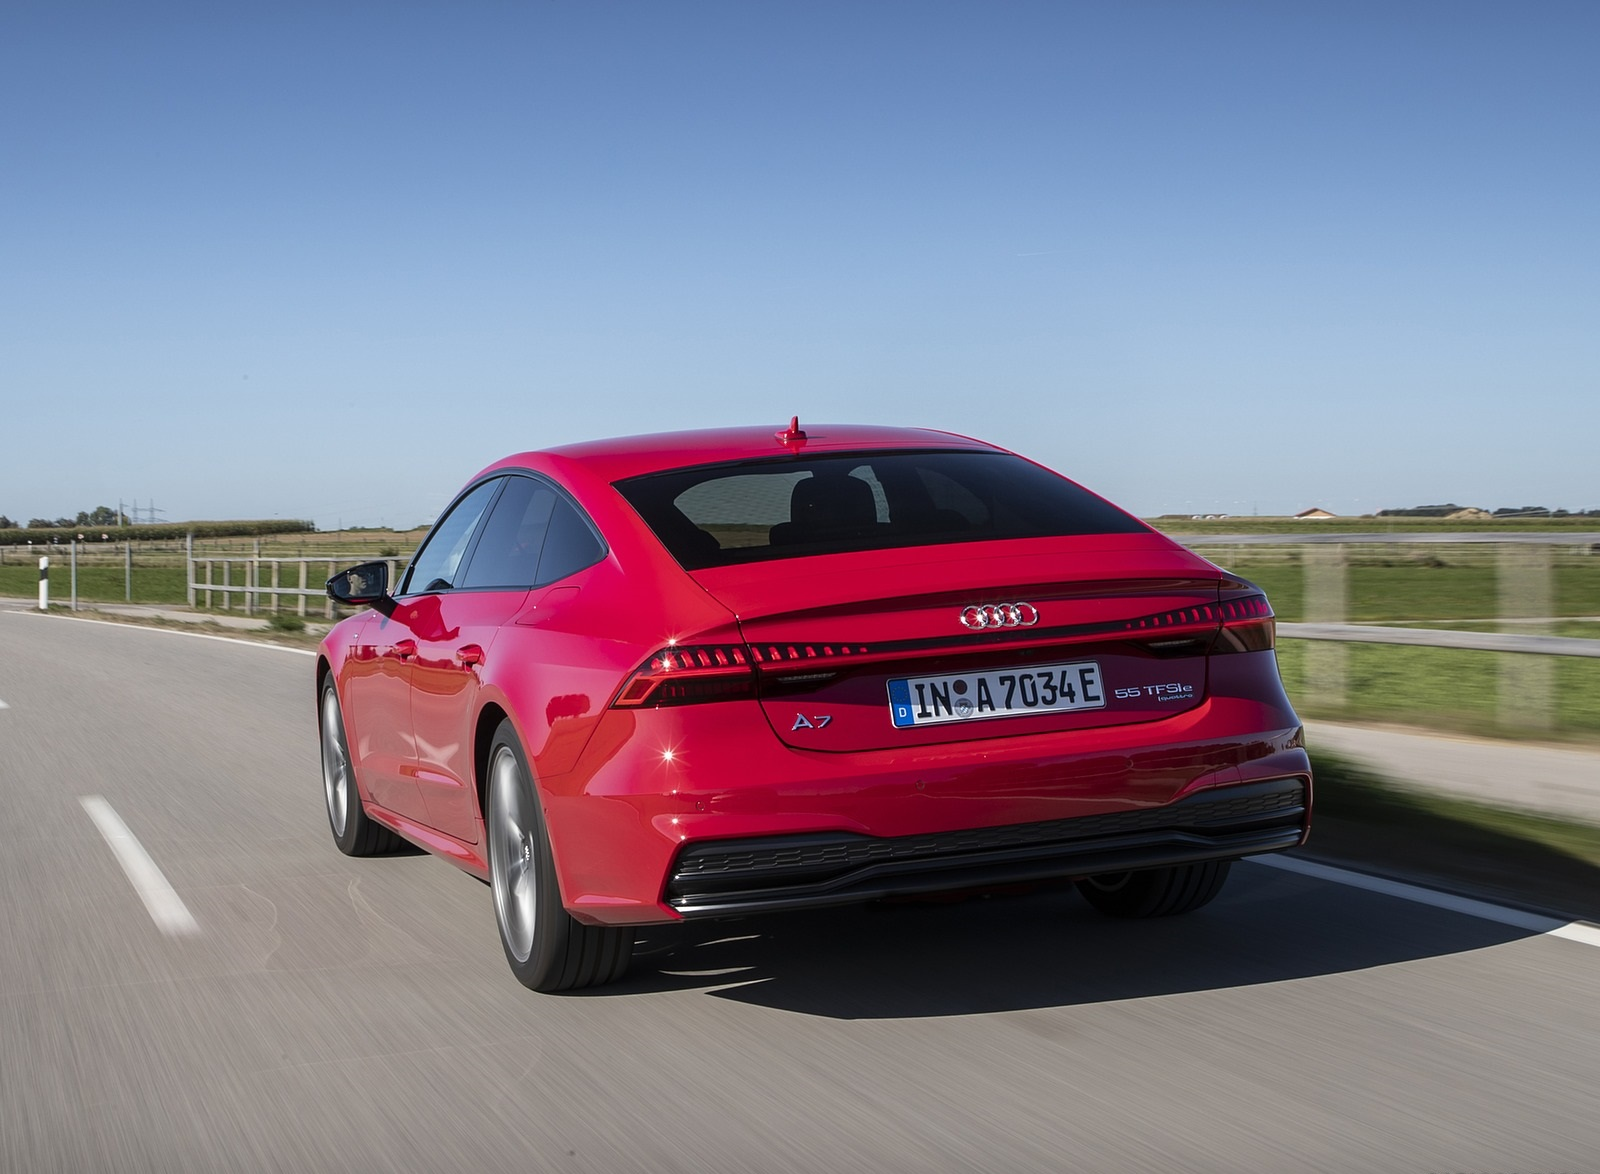 2020 Audi A7 Sportback 55 TFSI e quattro Plug-In Hybrid (Color: Tango Red) Rear Wallpapers (7)